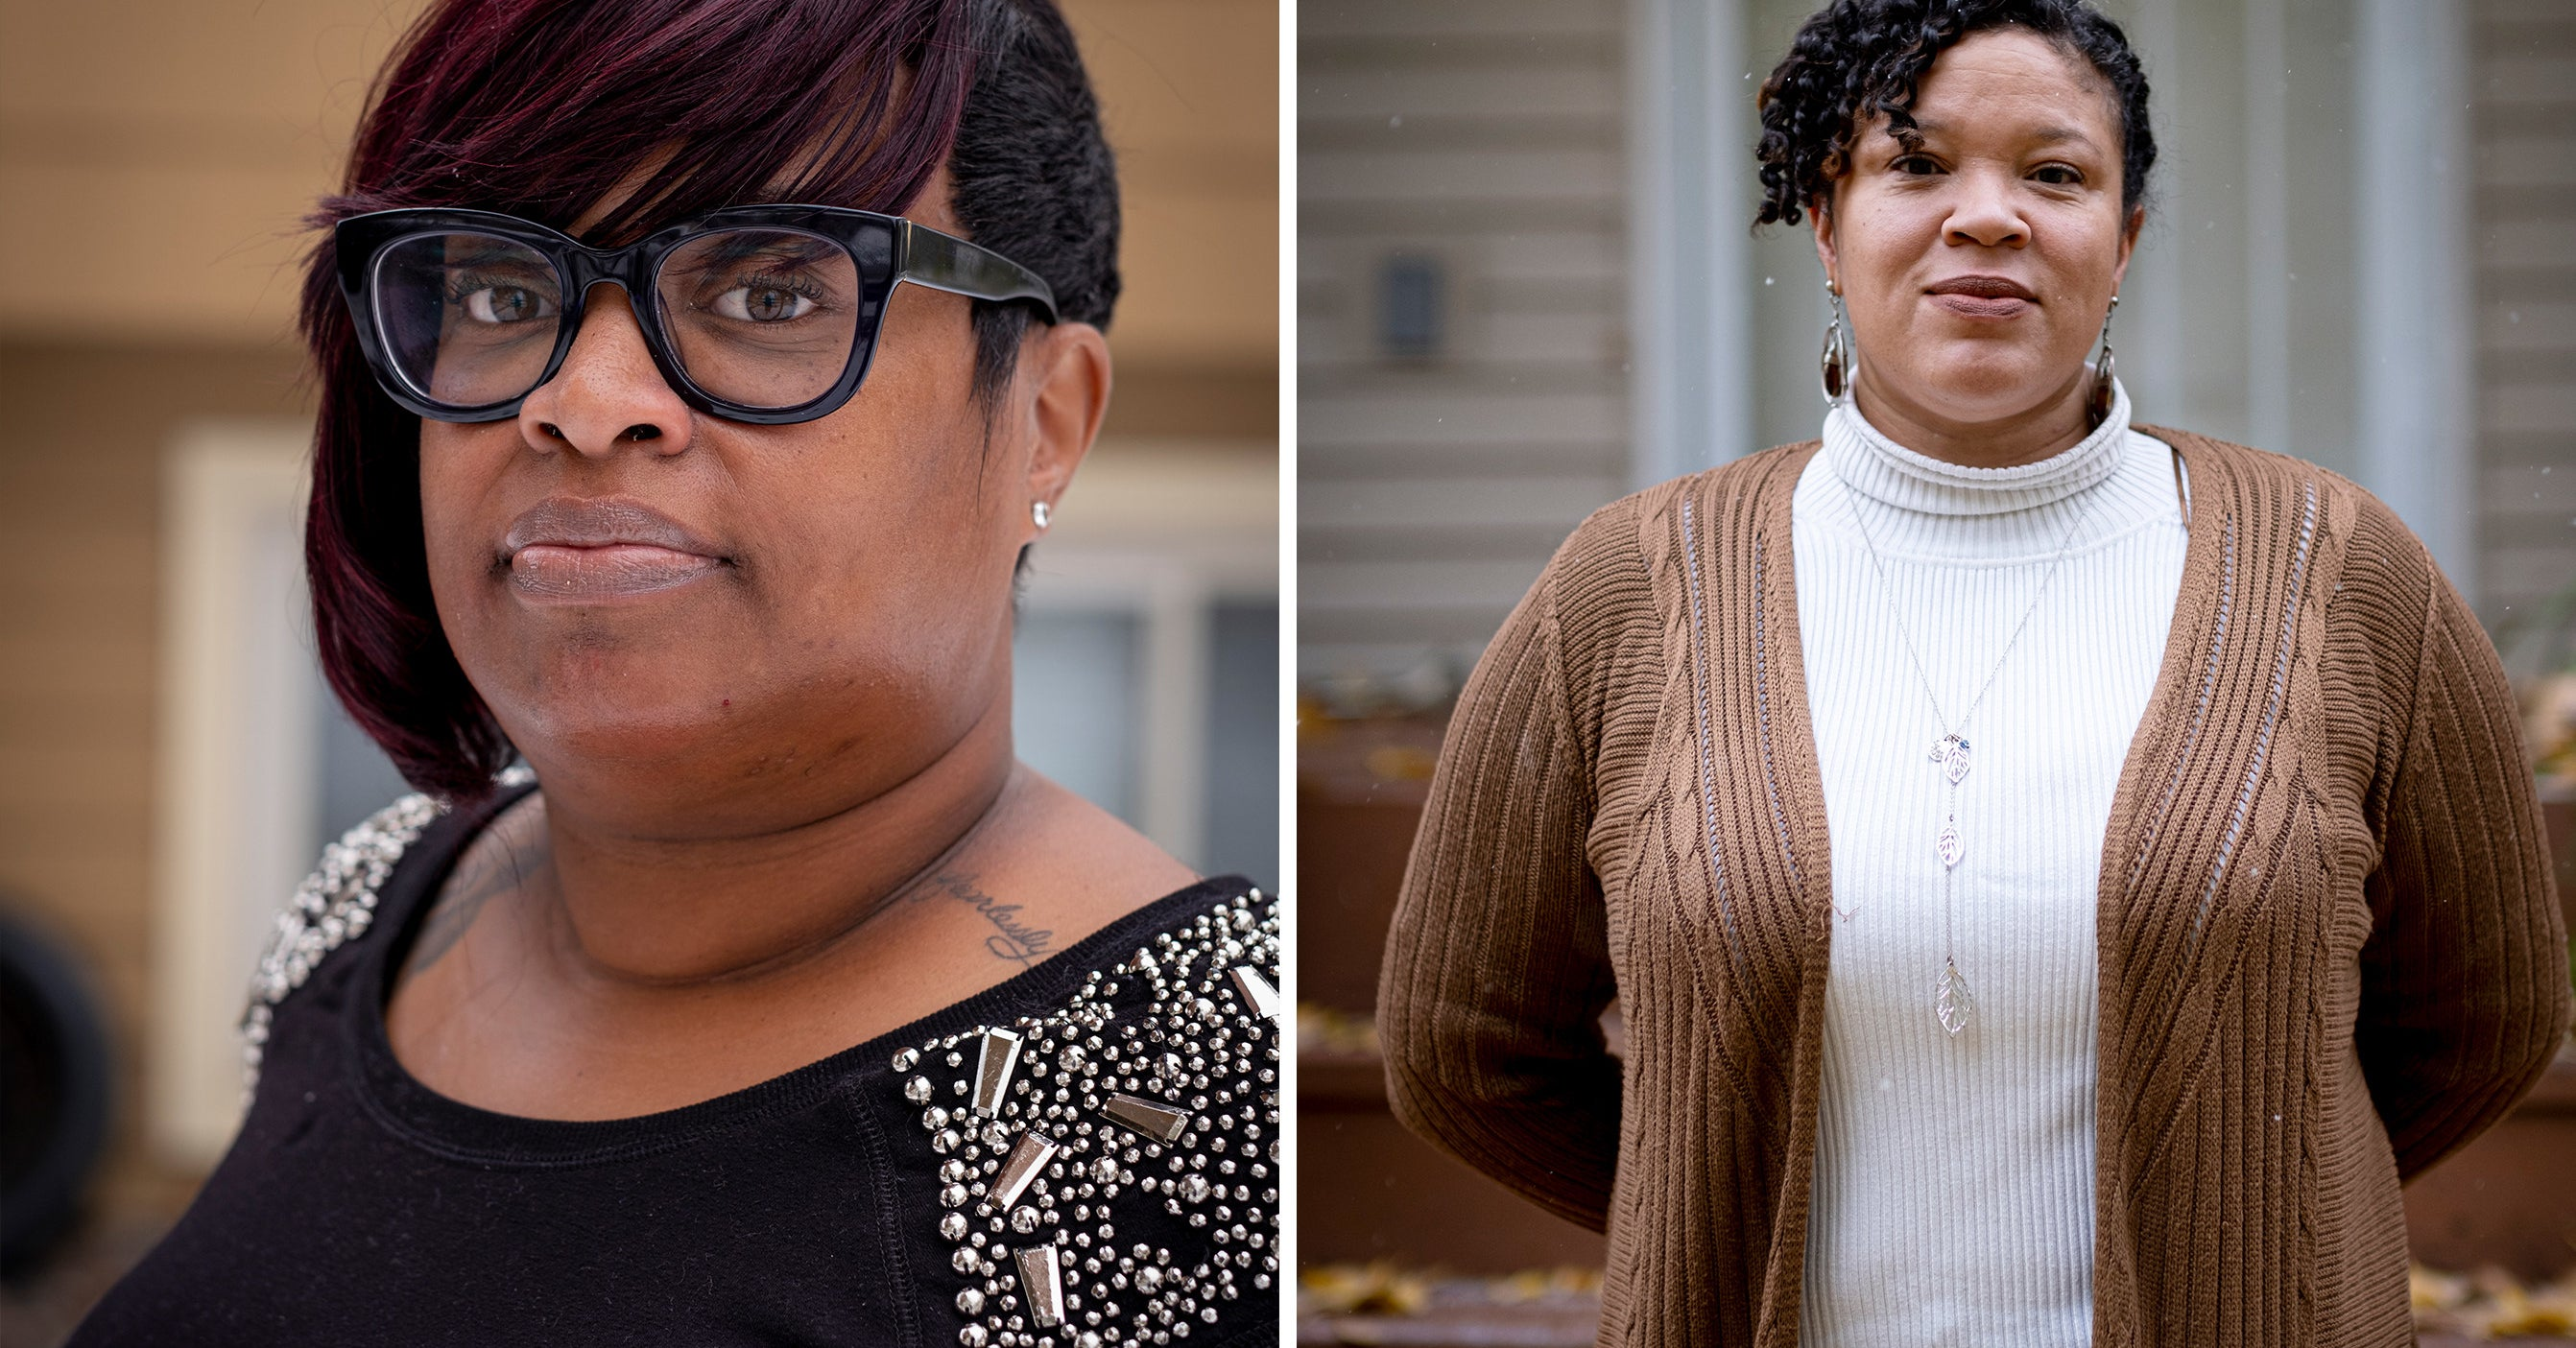 Trump Wants To Keep The Suburbs White. Black Women Say That's Fine By Them.